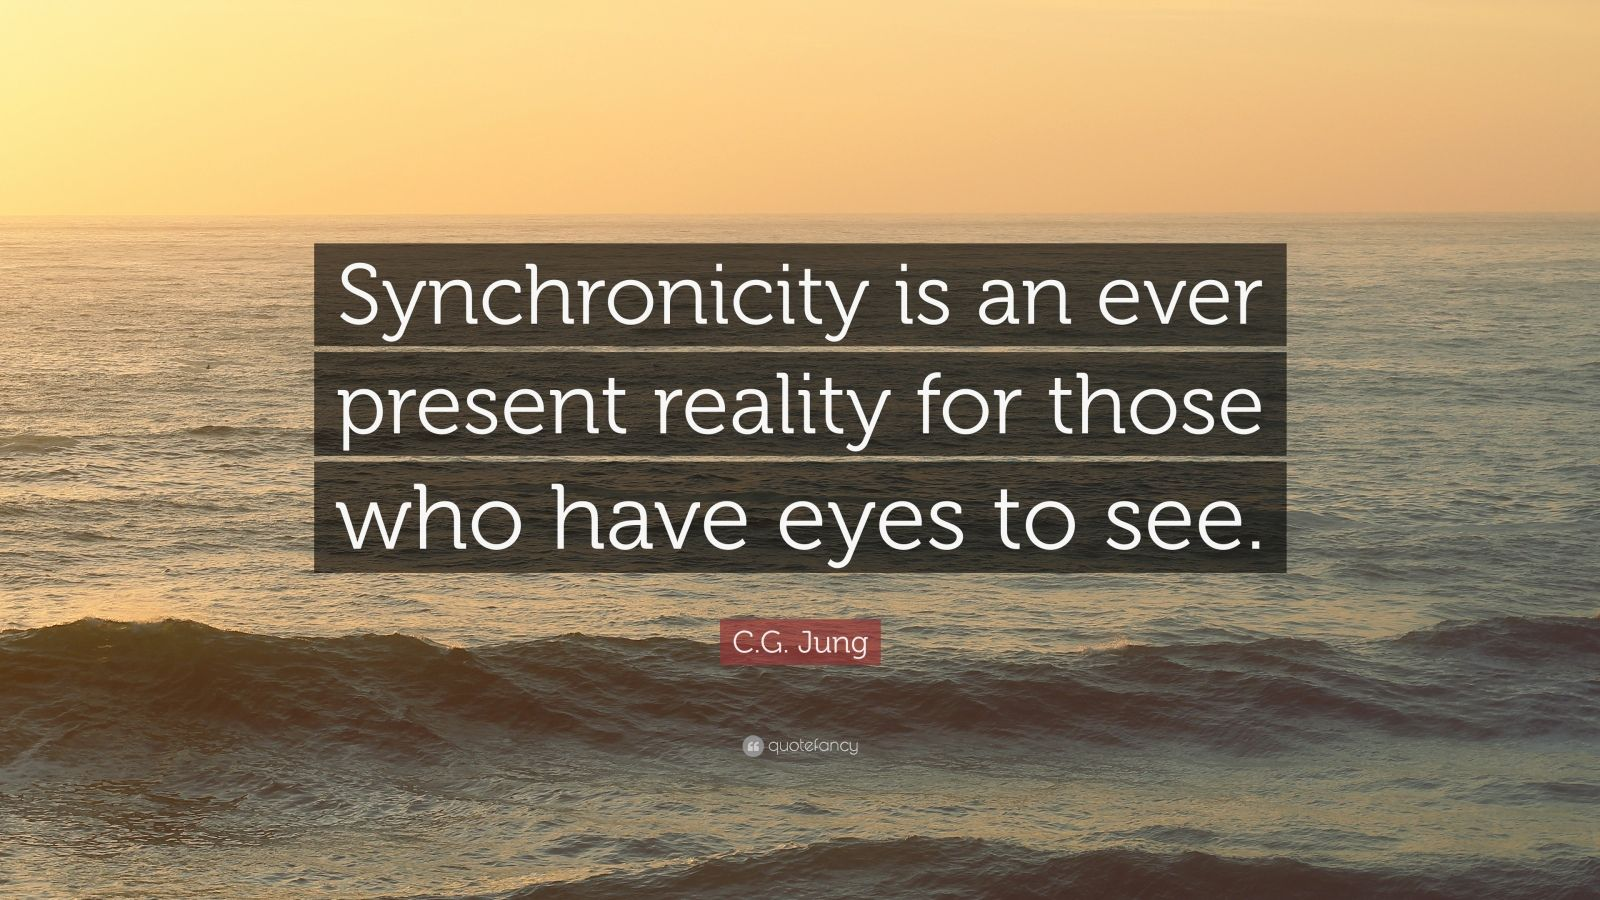 carl jung synchronicity essay Synchronicity is the technical name given to the events i'm referring to carl jung, the swiss psychologist, coined the term in his 1951 essay on this topic.